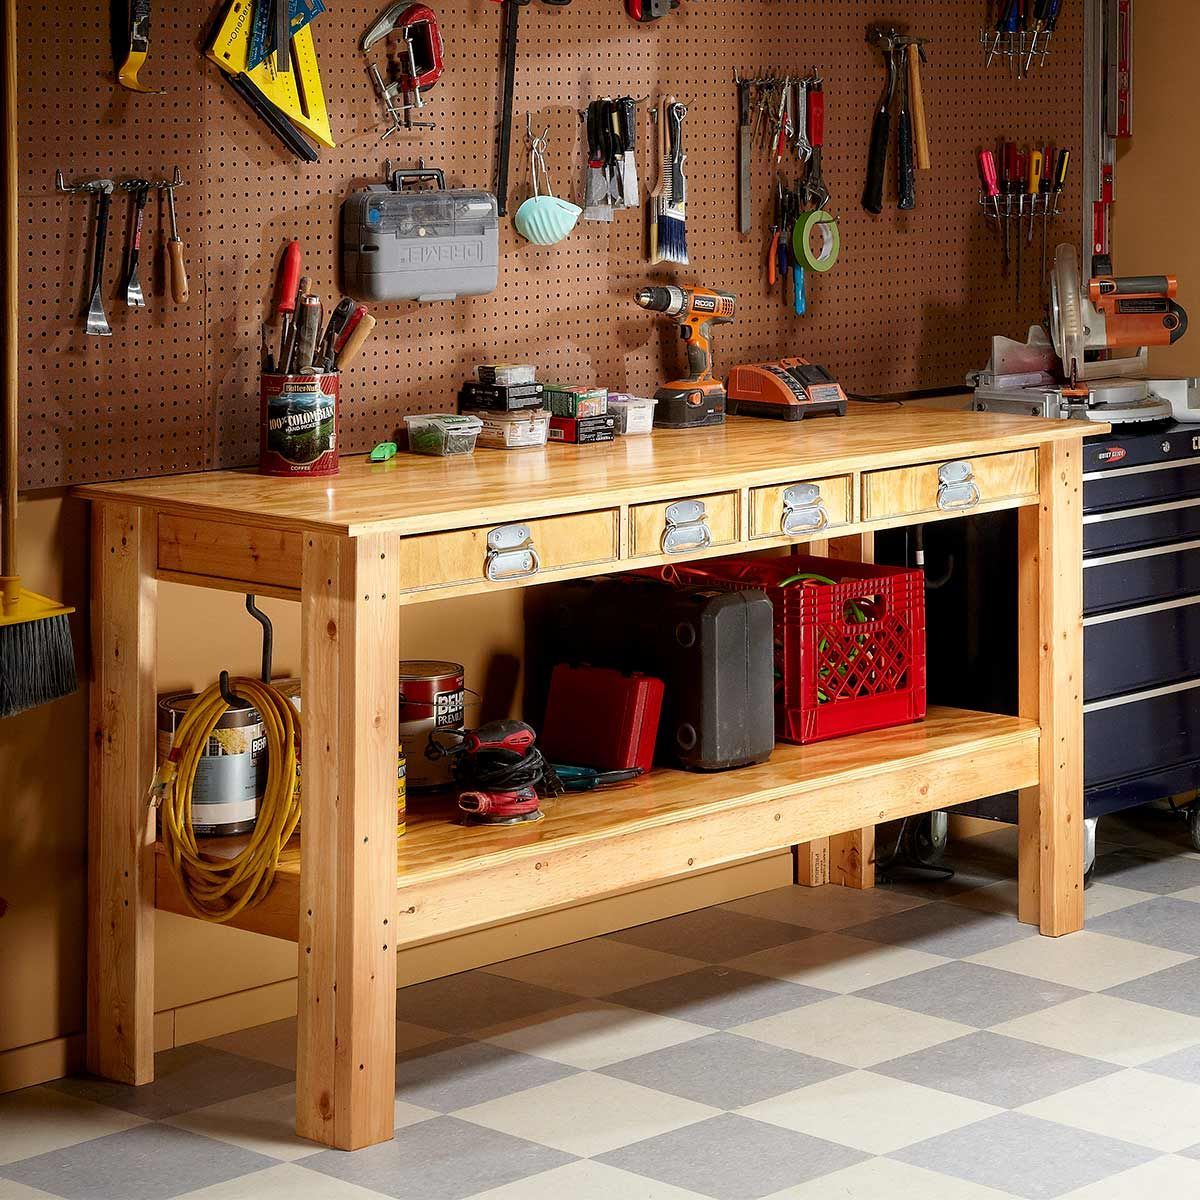 Simple Workbench Plans Simple Workbench Plans Workbench Designs Workbench Plans Diy